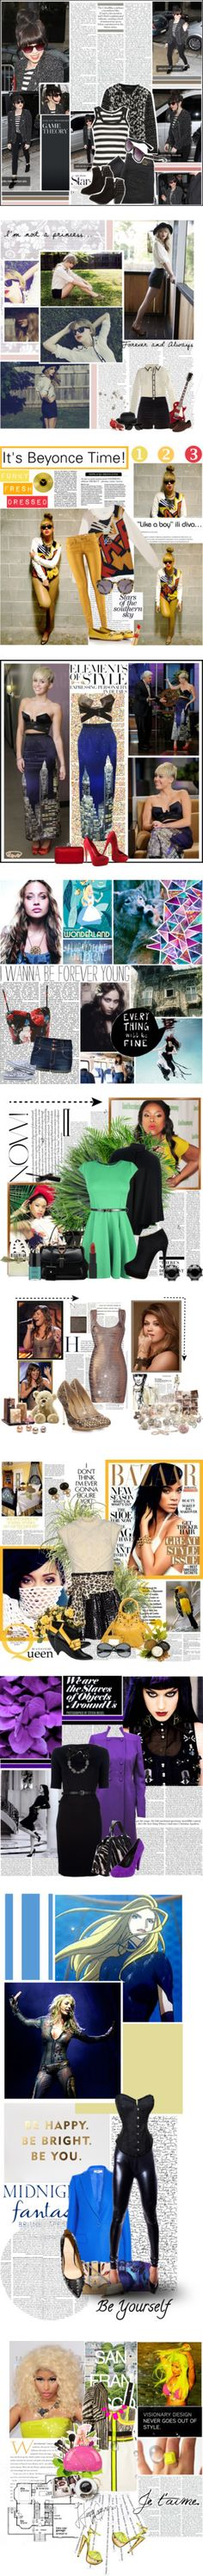 """""""The 11 Top Pop Music Moments of 2012!"""" by polyvore-editorial ❤ liked on Polyvore"""